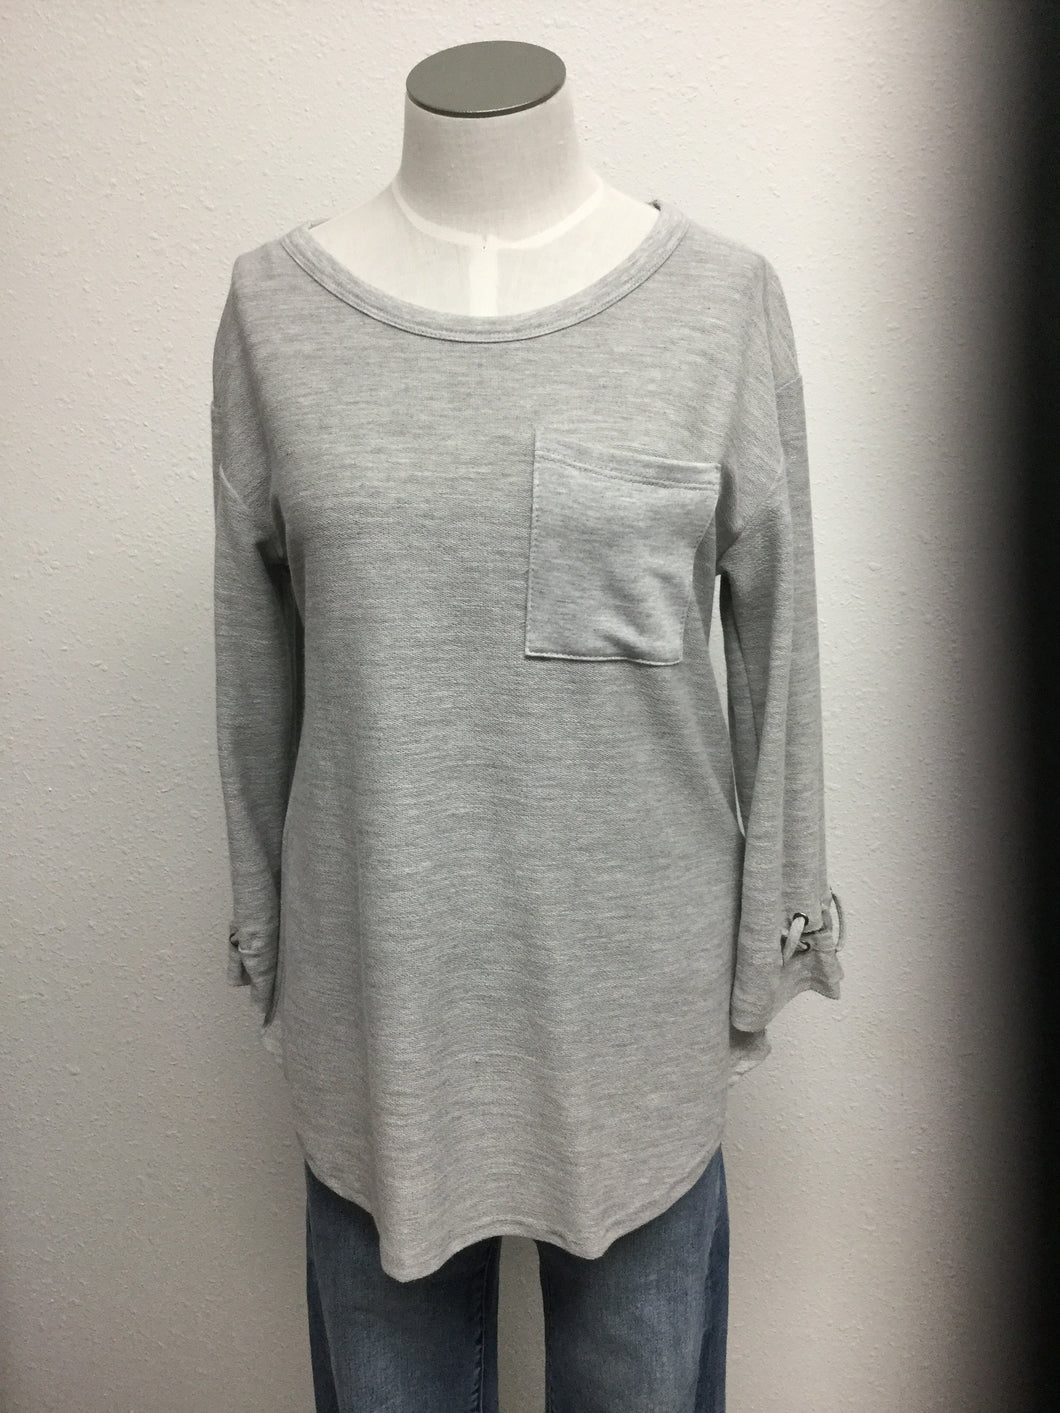 French terry rounded neck 3/4 sleeve w eyelet sleeves & pocket